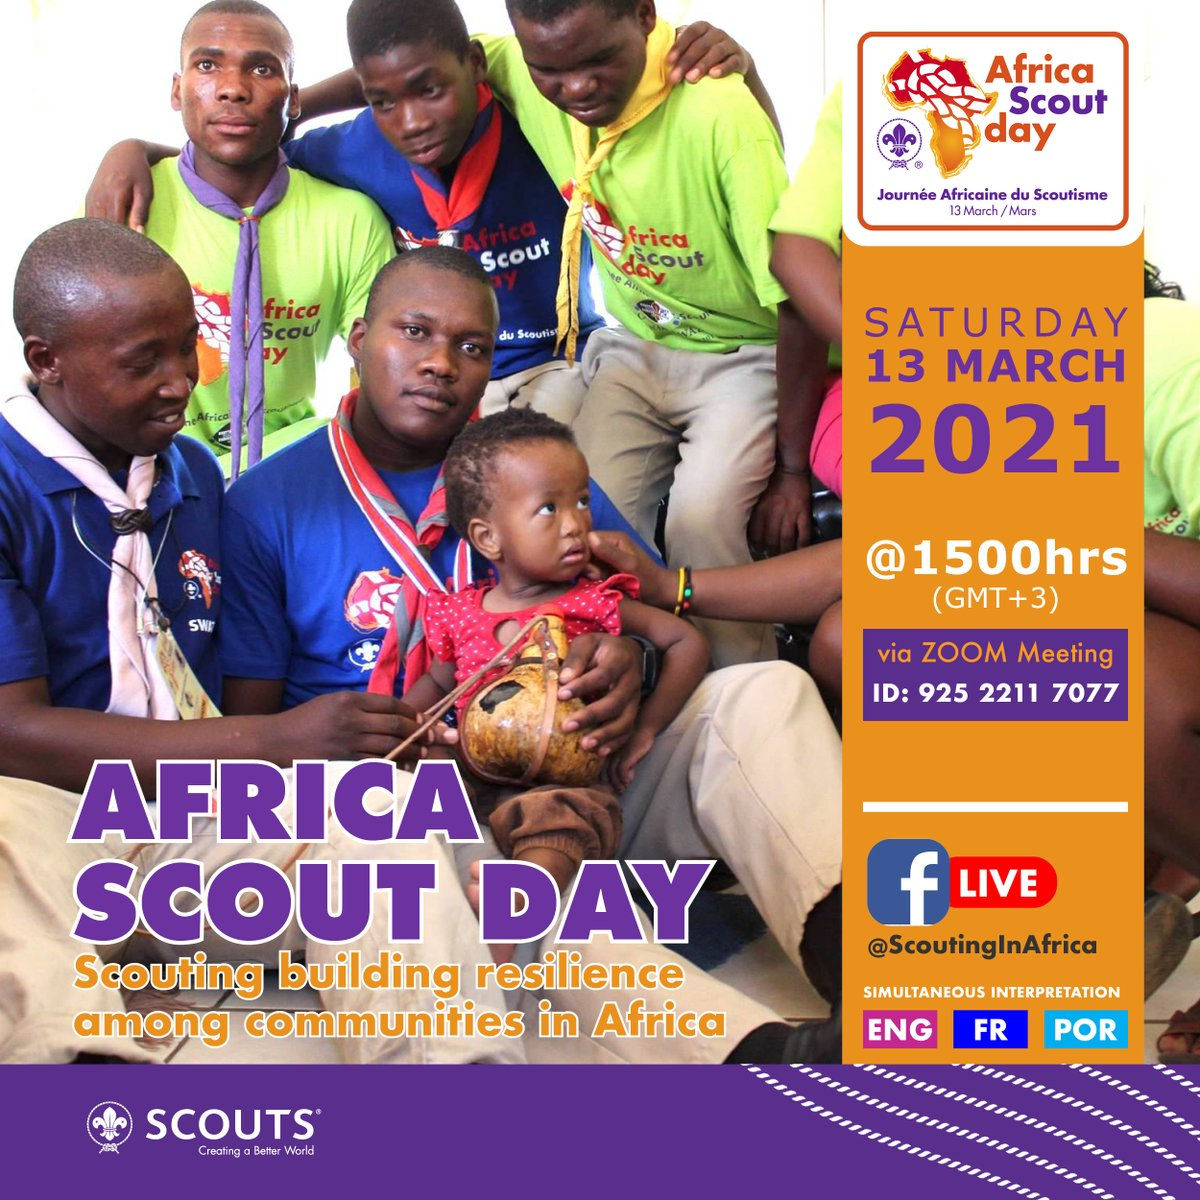 #Scouts in Africa showed its strength, resilience and ingenuity in turning challenges of COVID-19 into opportunities for community service. 💪 👍  Join us for a virtual #AfricaScoutDay celebration on 13 March 2021 via Zoom:  (Meeting ID: 925 2211 7077)